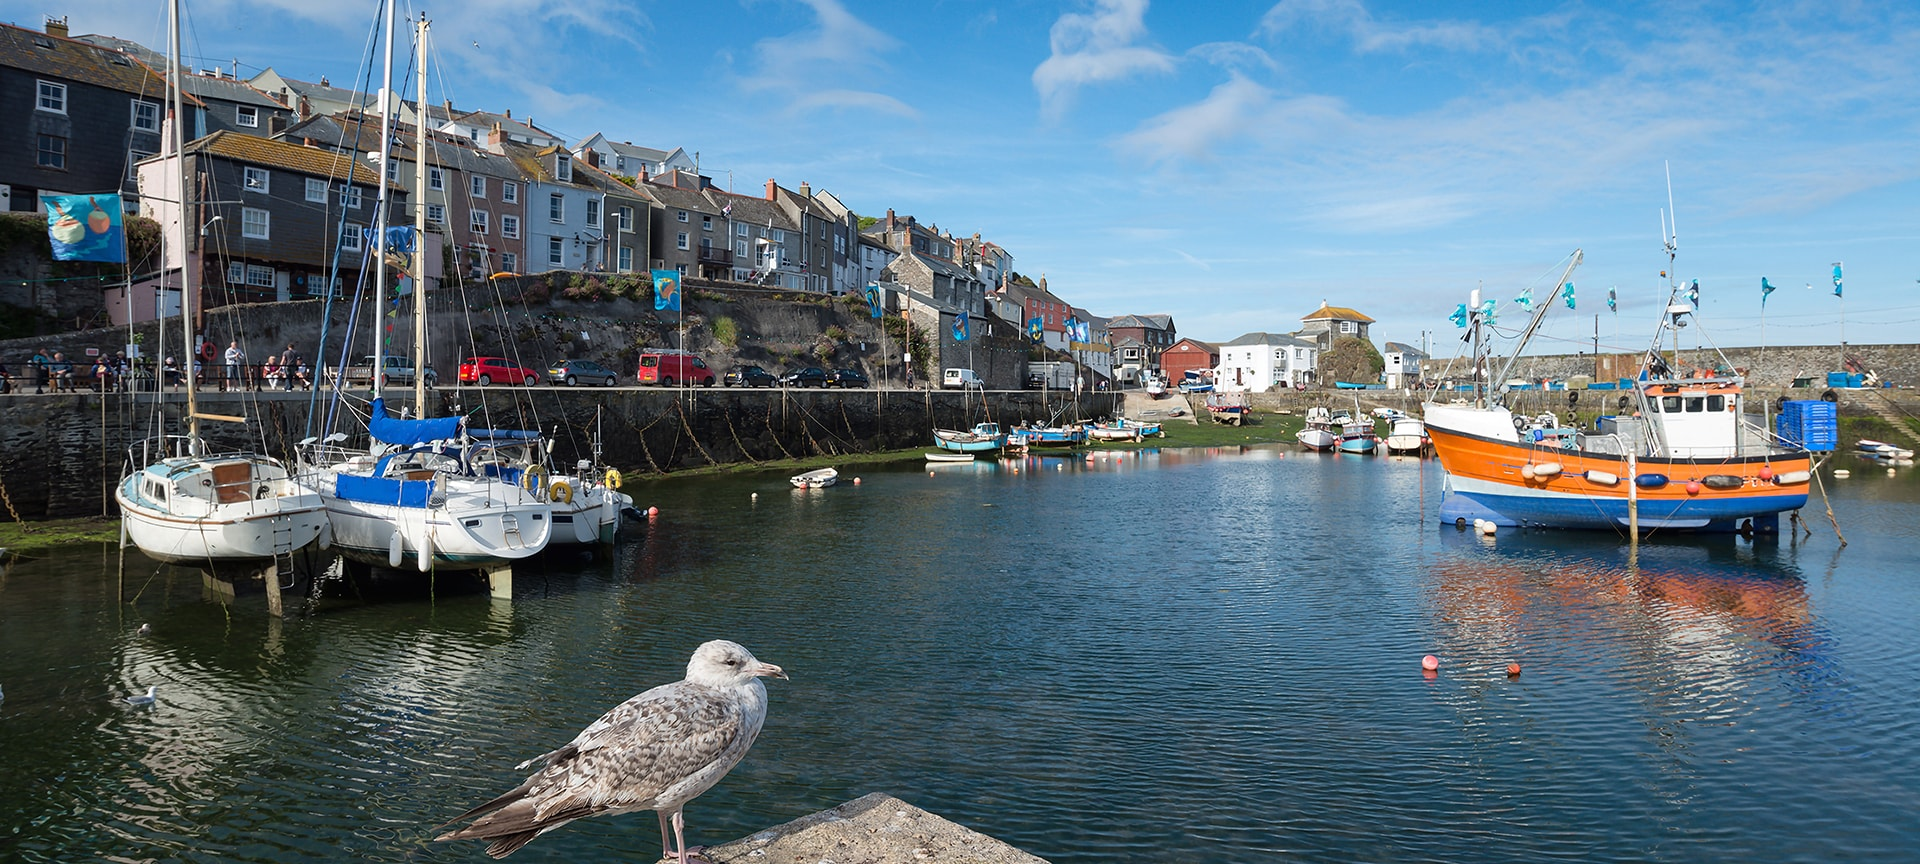 The inner and outer harbours at Mevagissey are always filled with working and pleasure craft including a small fishing fleet and popular fishing tour boats. Stroll around the shops and restaurants or enjoy an ice cream and fish and chips on the harbour wall.